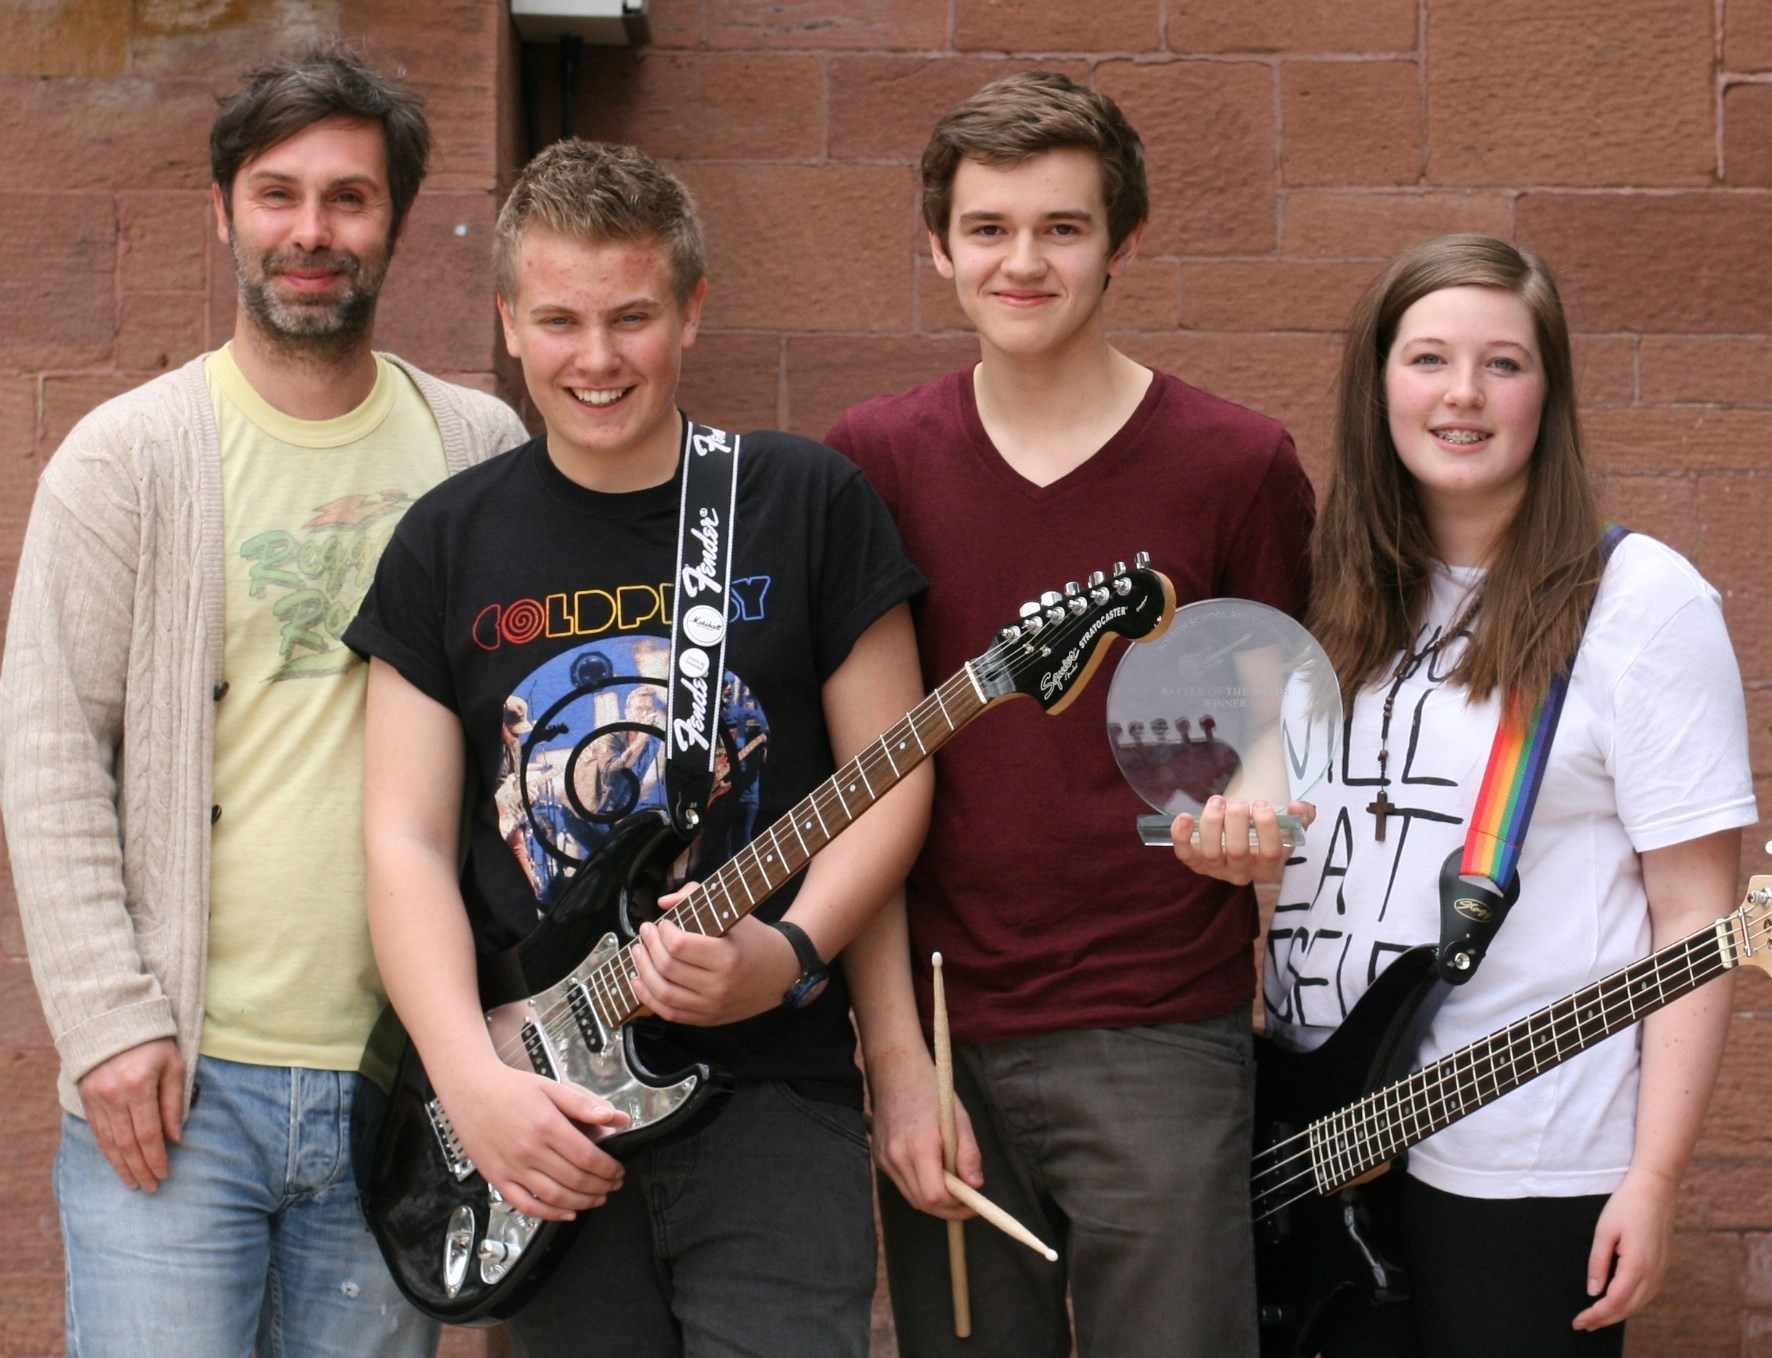 bolton school  girl and boys in harmony at battle of the bands